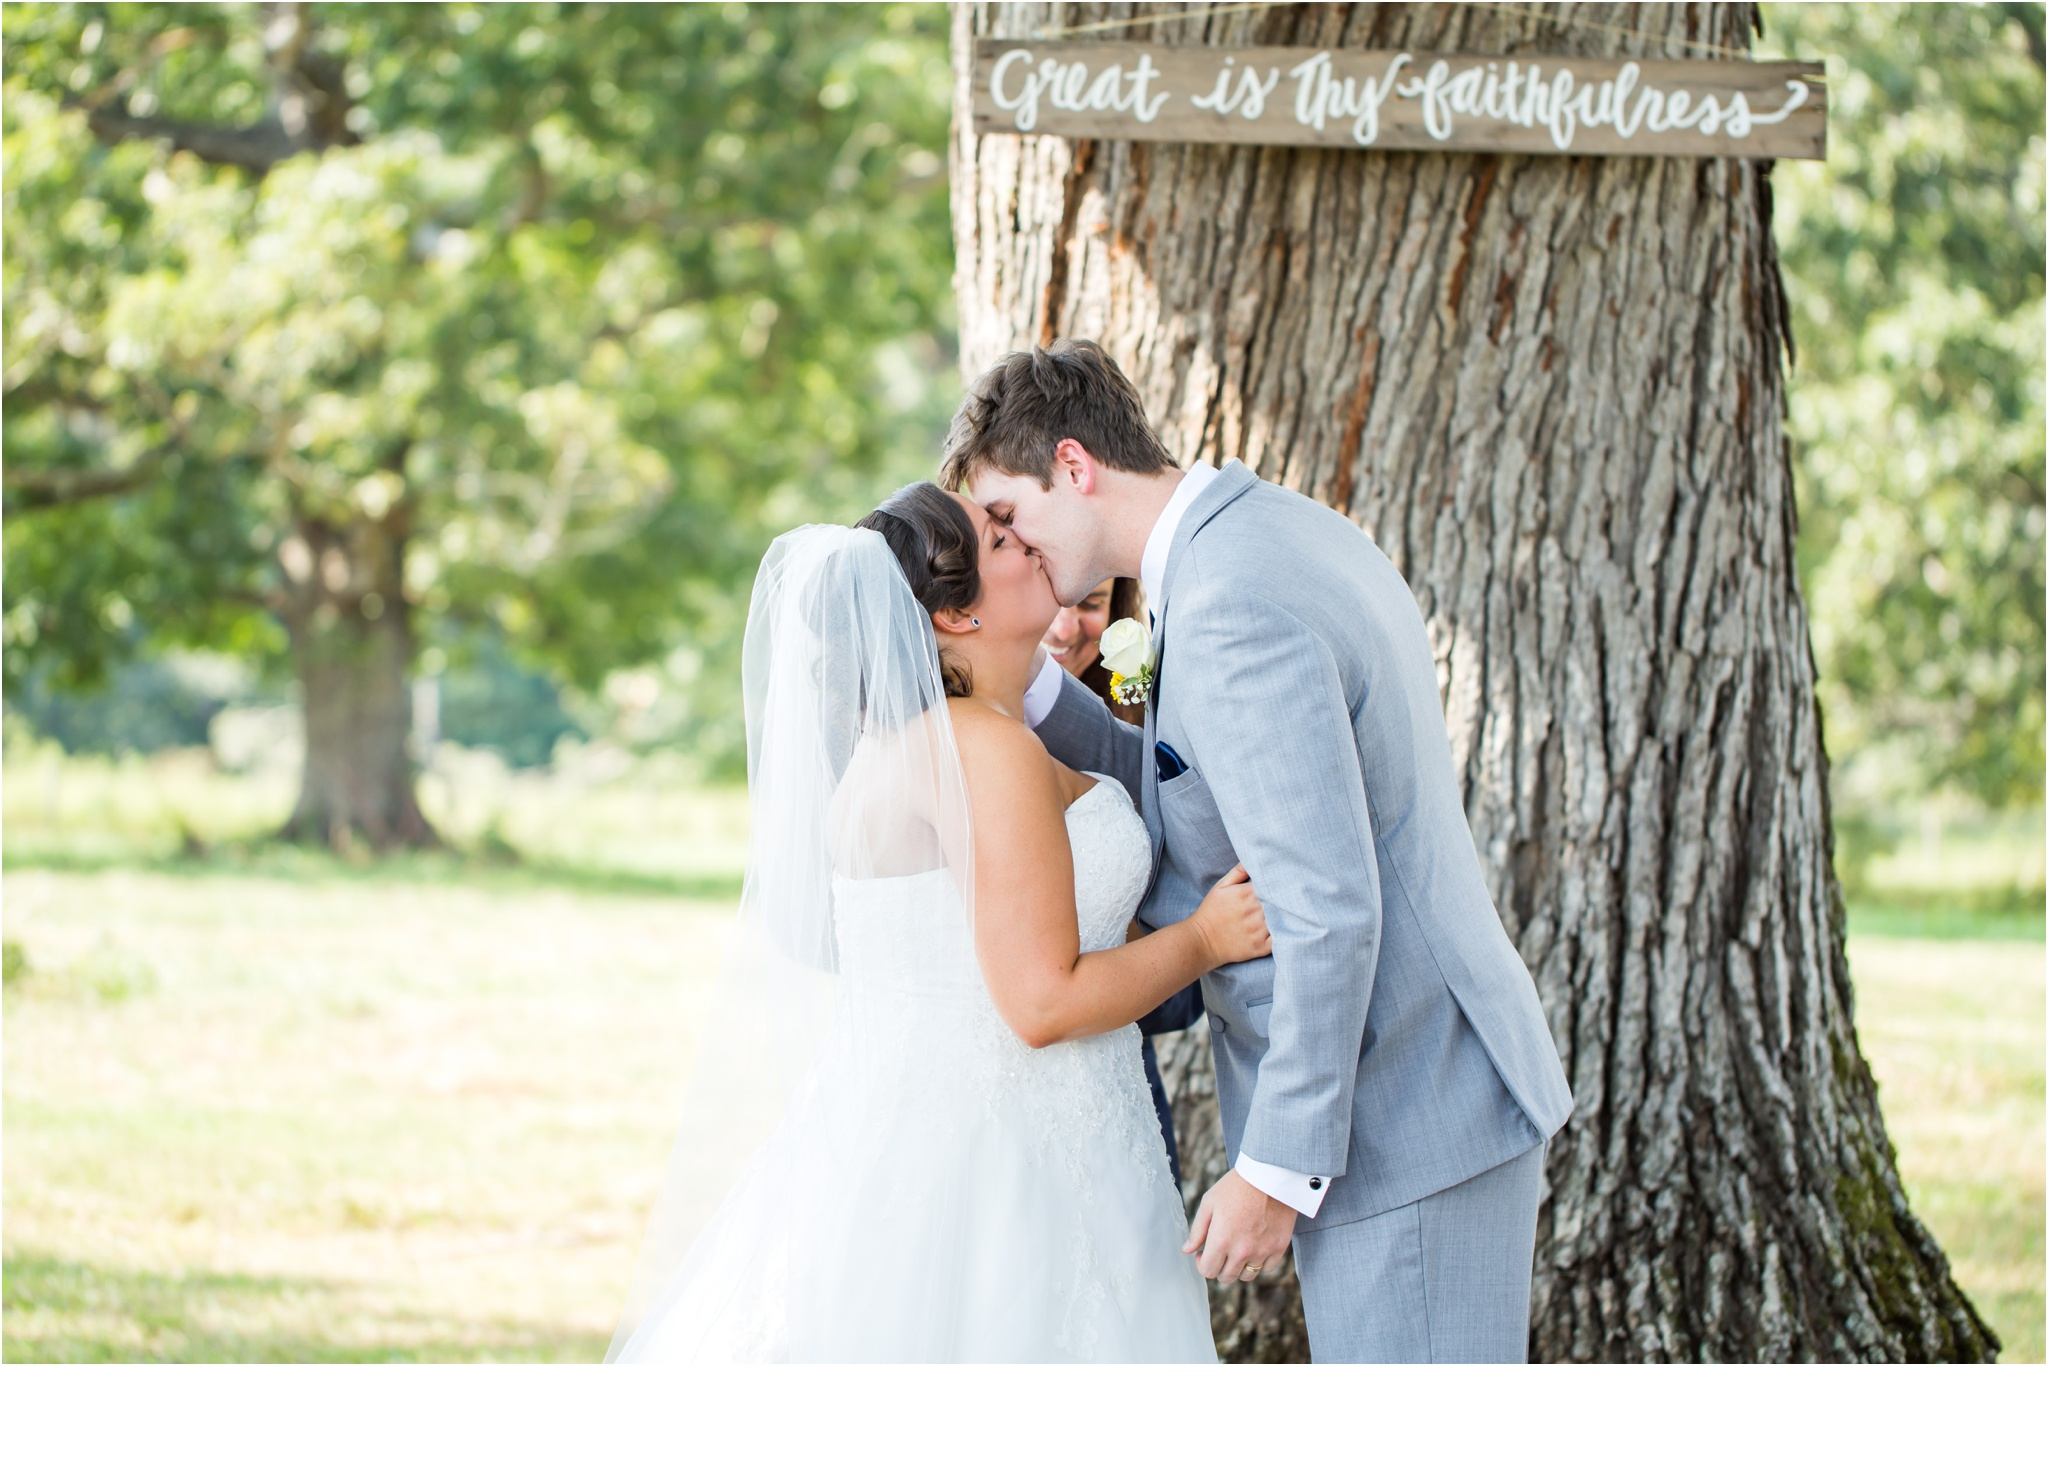 Rainey_Gregg_Photography_St._Simons_Island_Georgia_California_Wedding_Portrait_Photography_0315.jpg